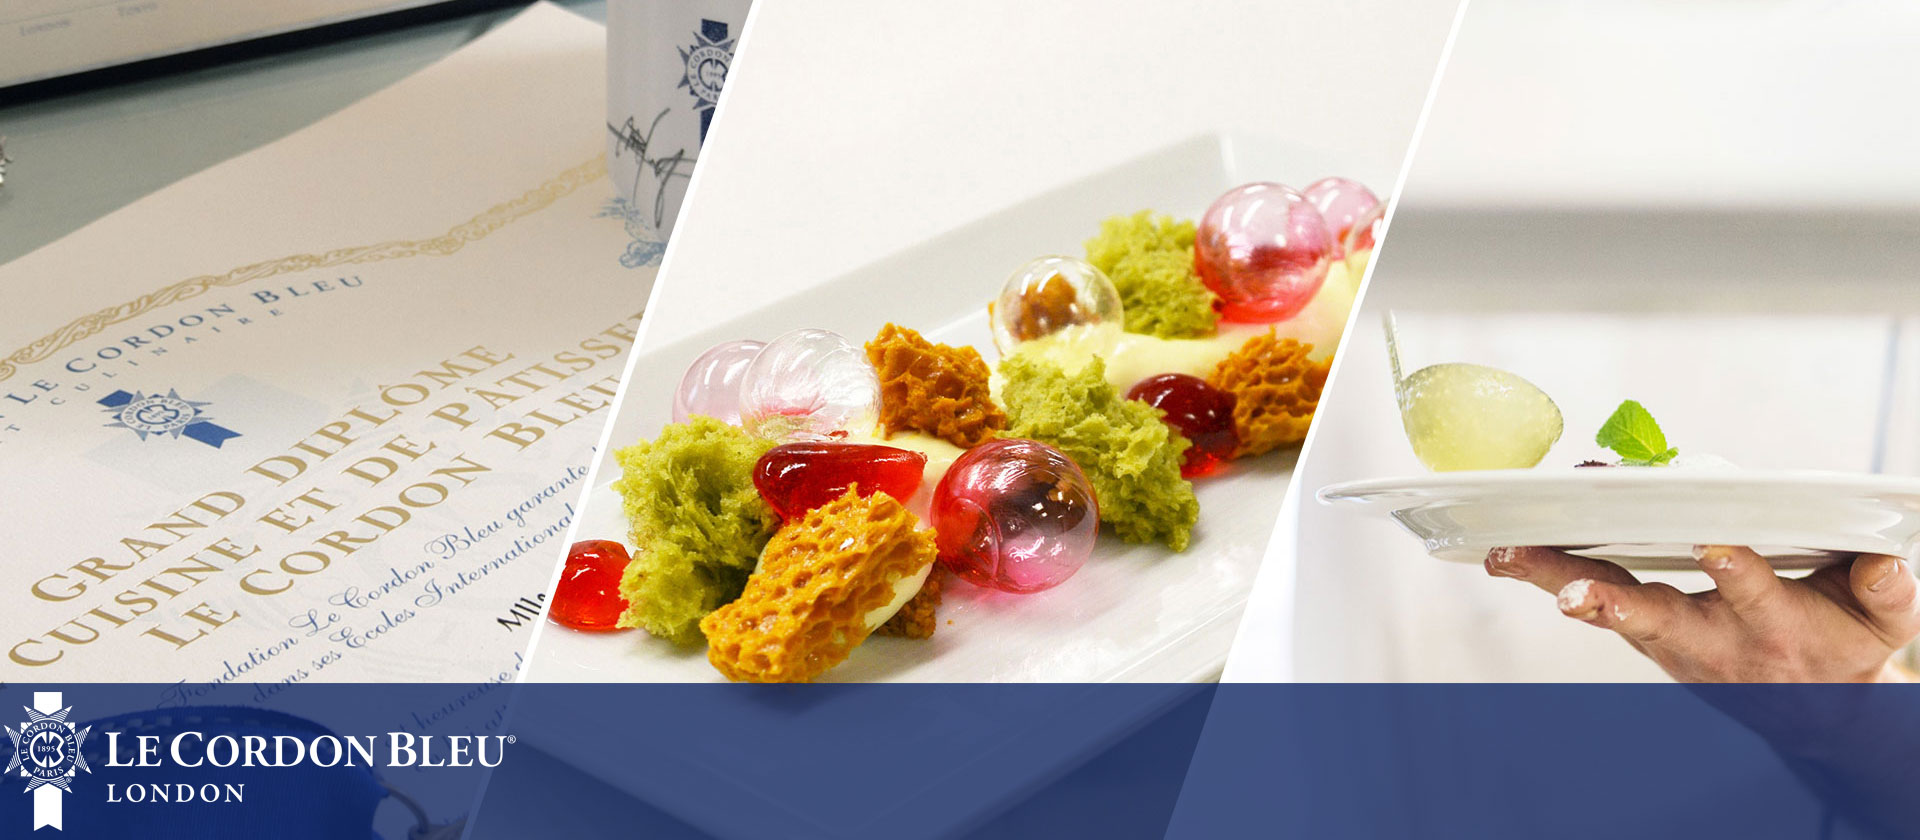 internship pathway at Le Cordon Bleu London